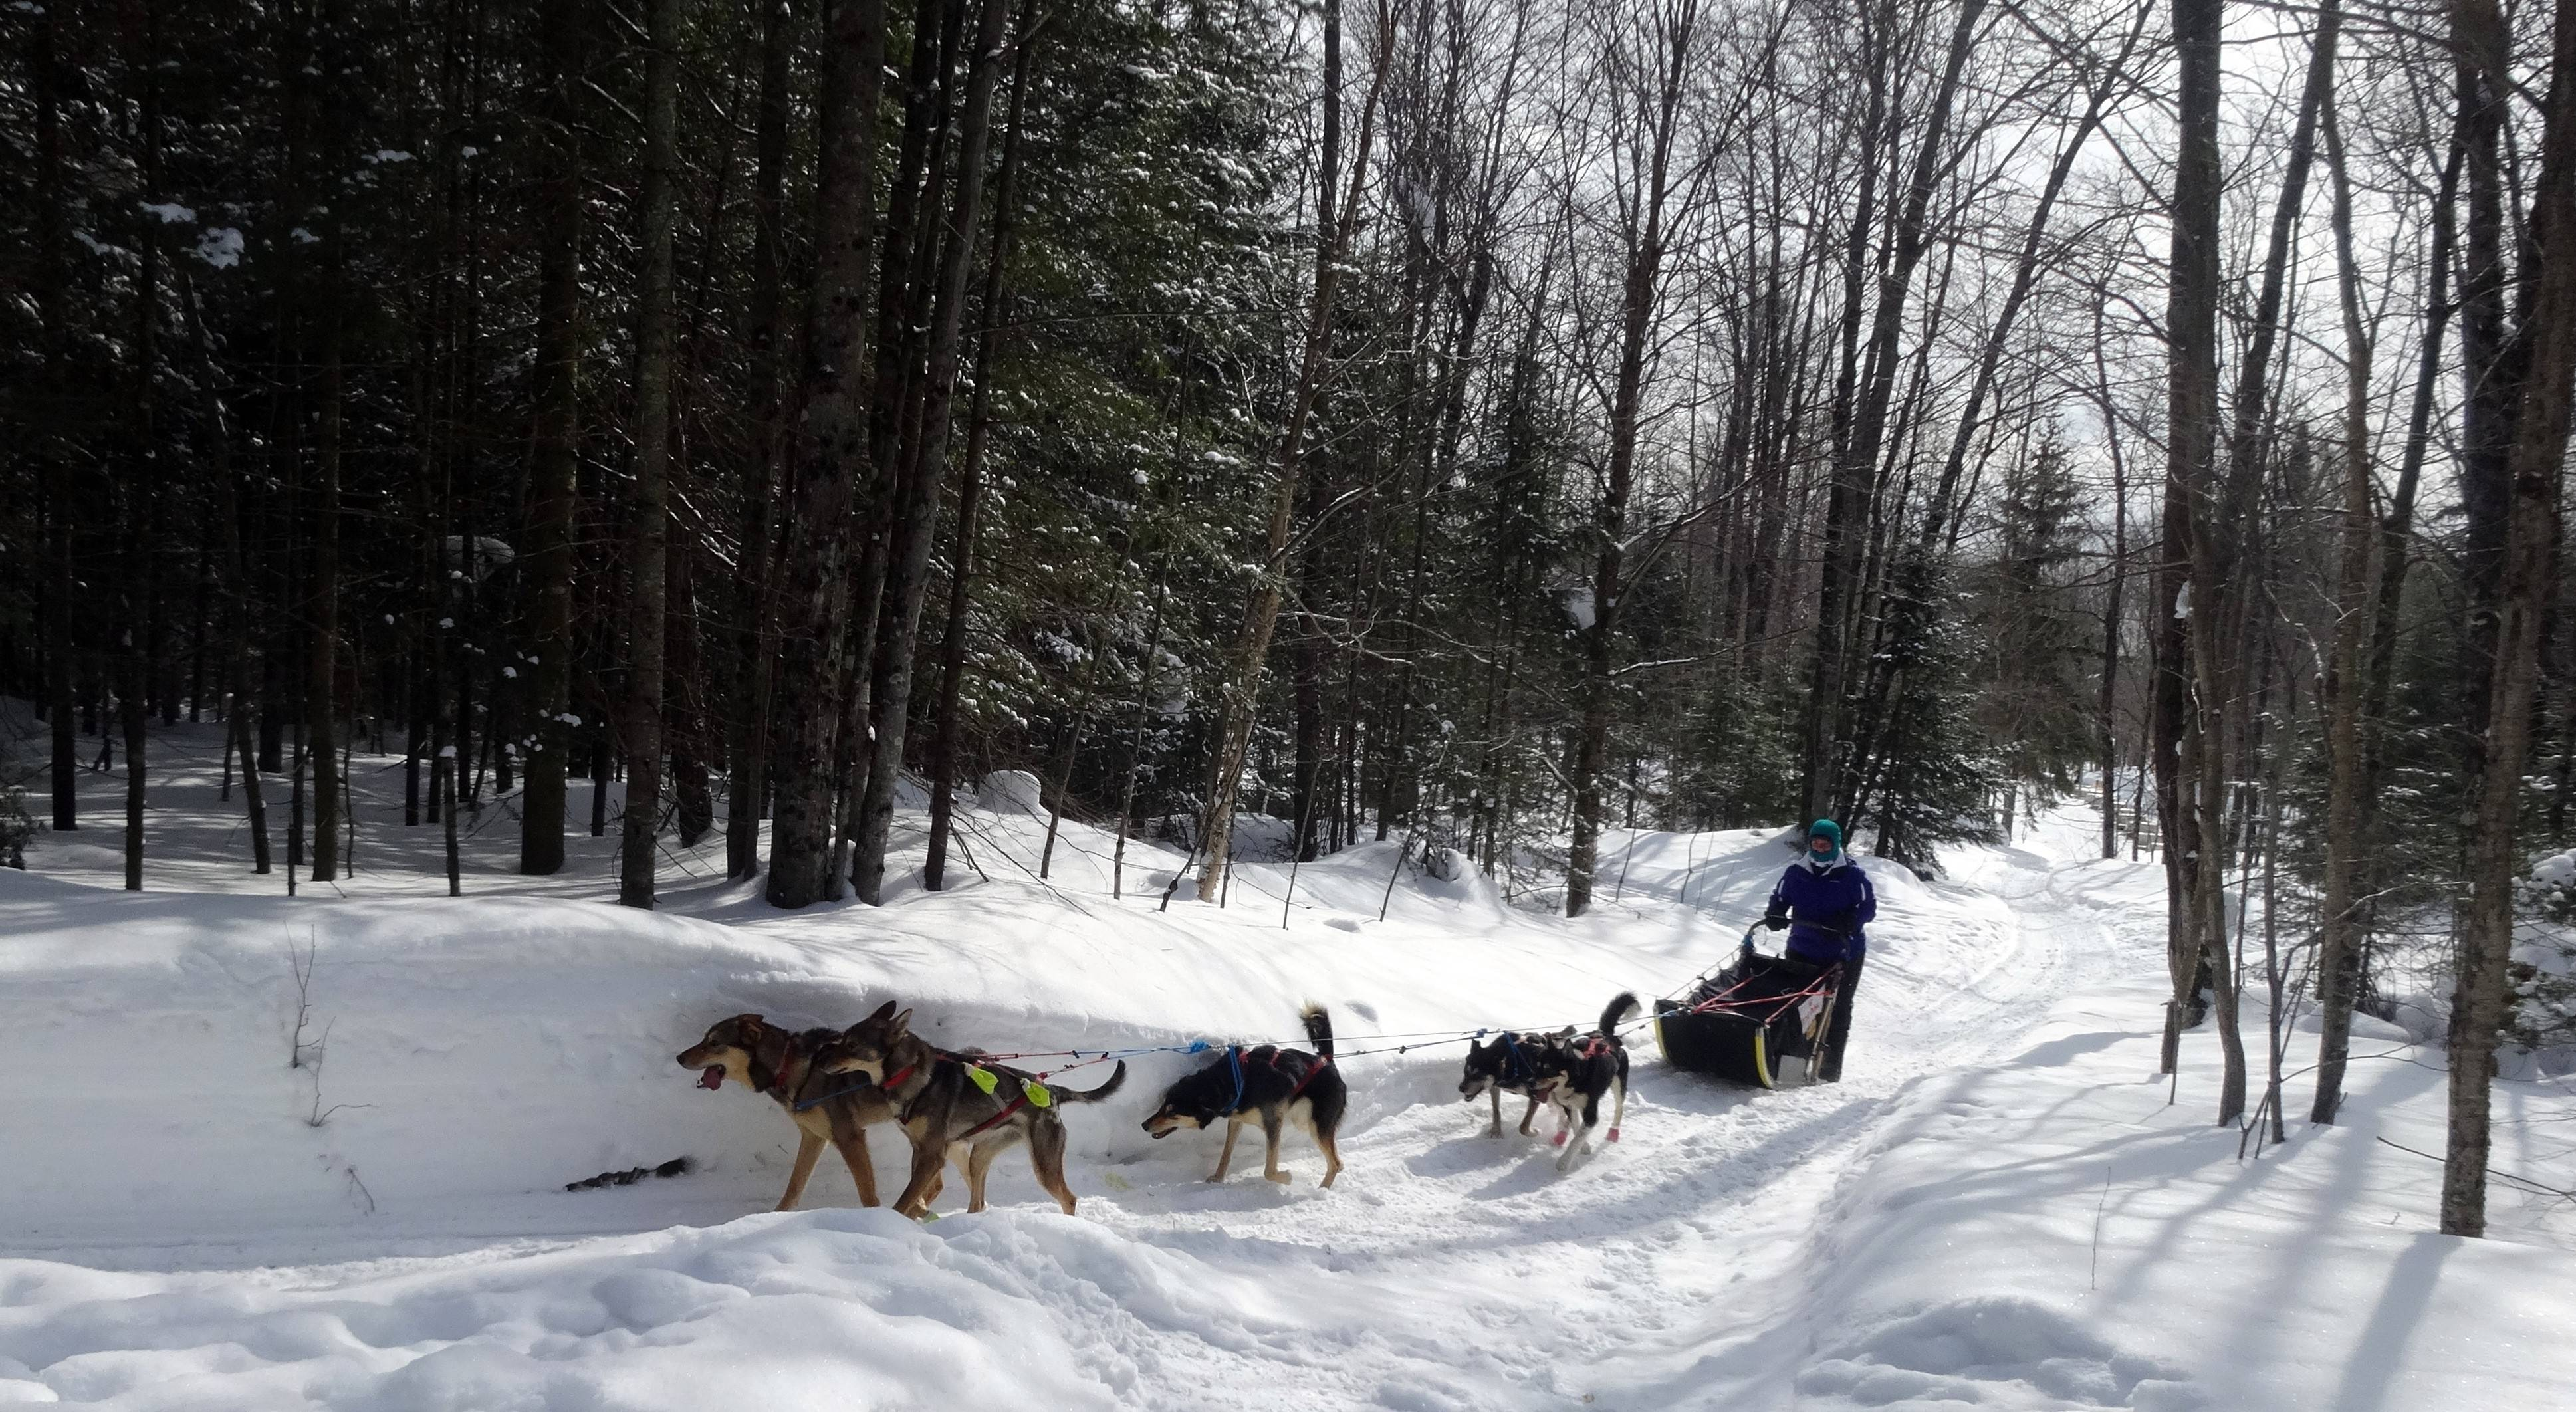 Zipping through Michigan's Upper Peninsula on a dog sled, Liz Kerr of Mount Prospect says she didn't mind the subzero cold during the exhilarating trip.